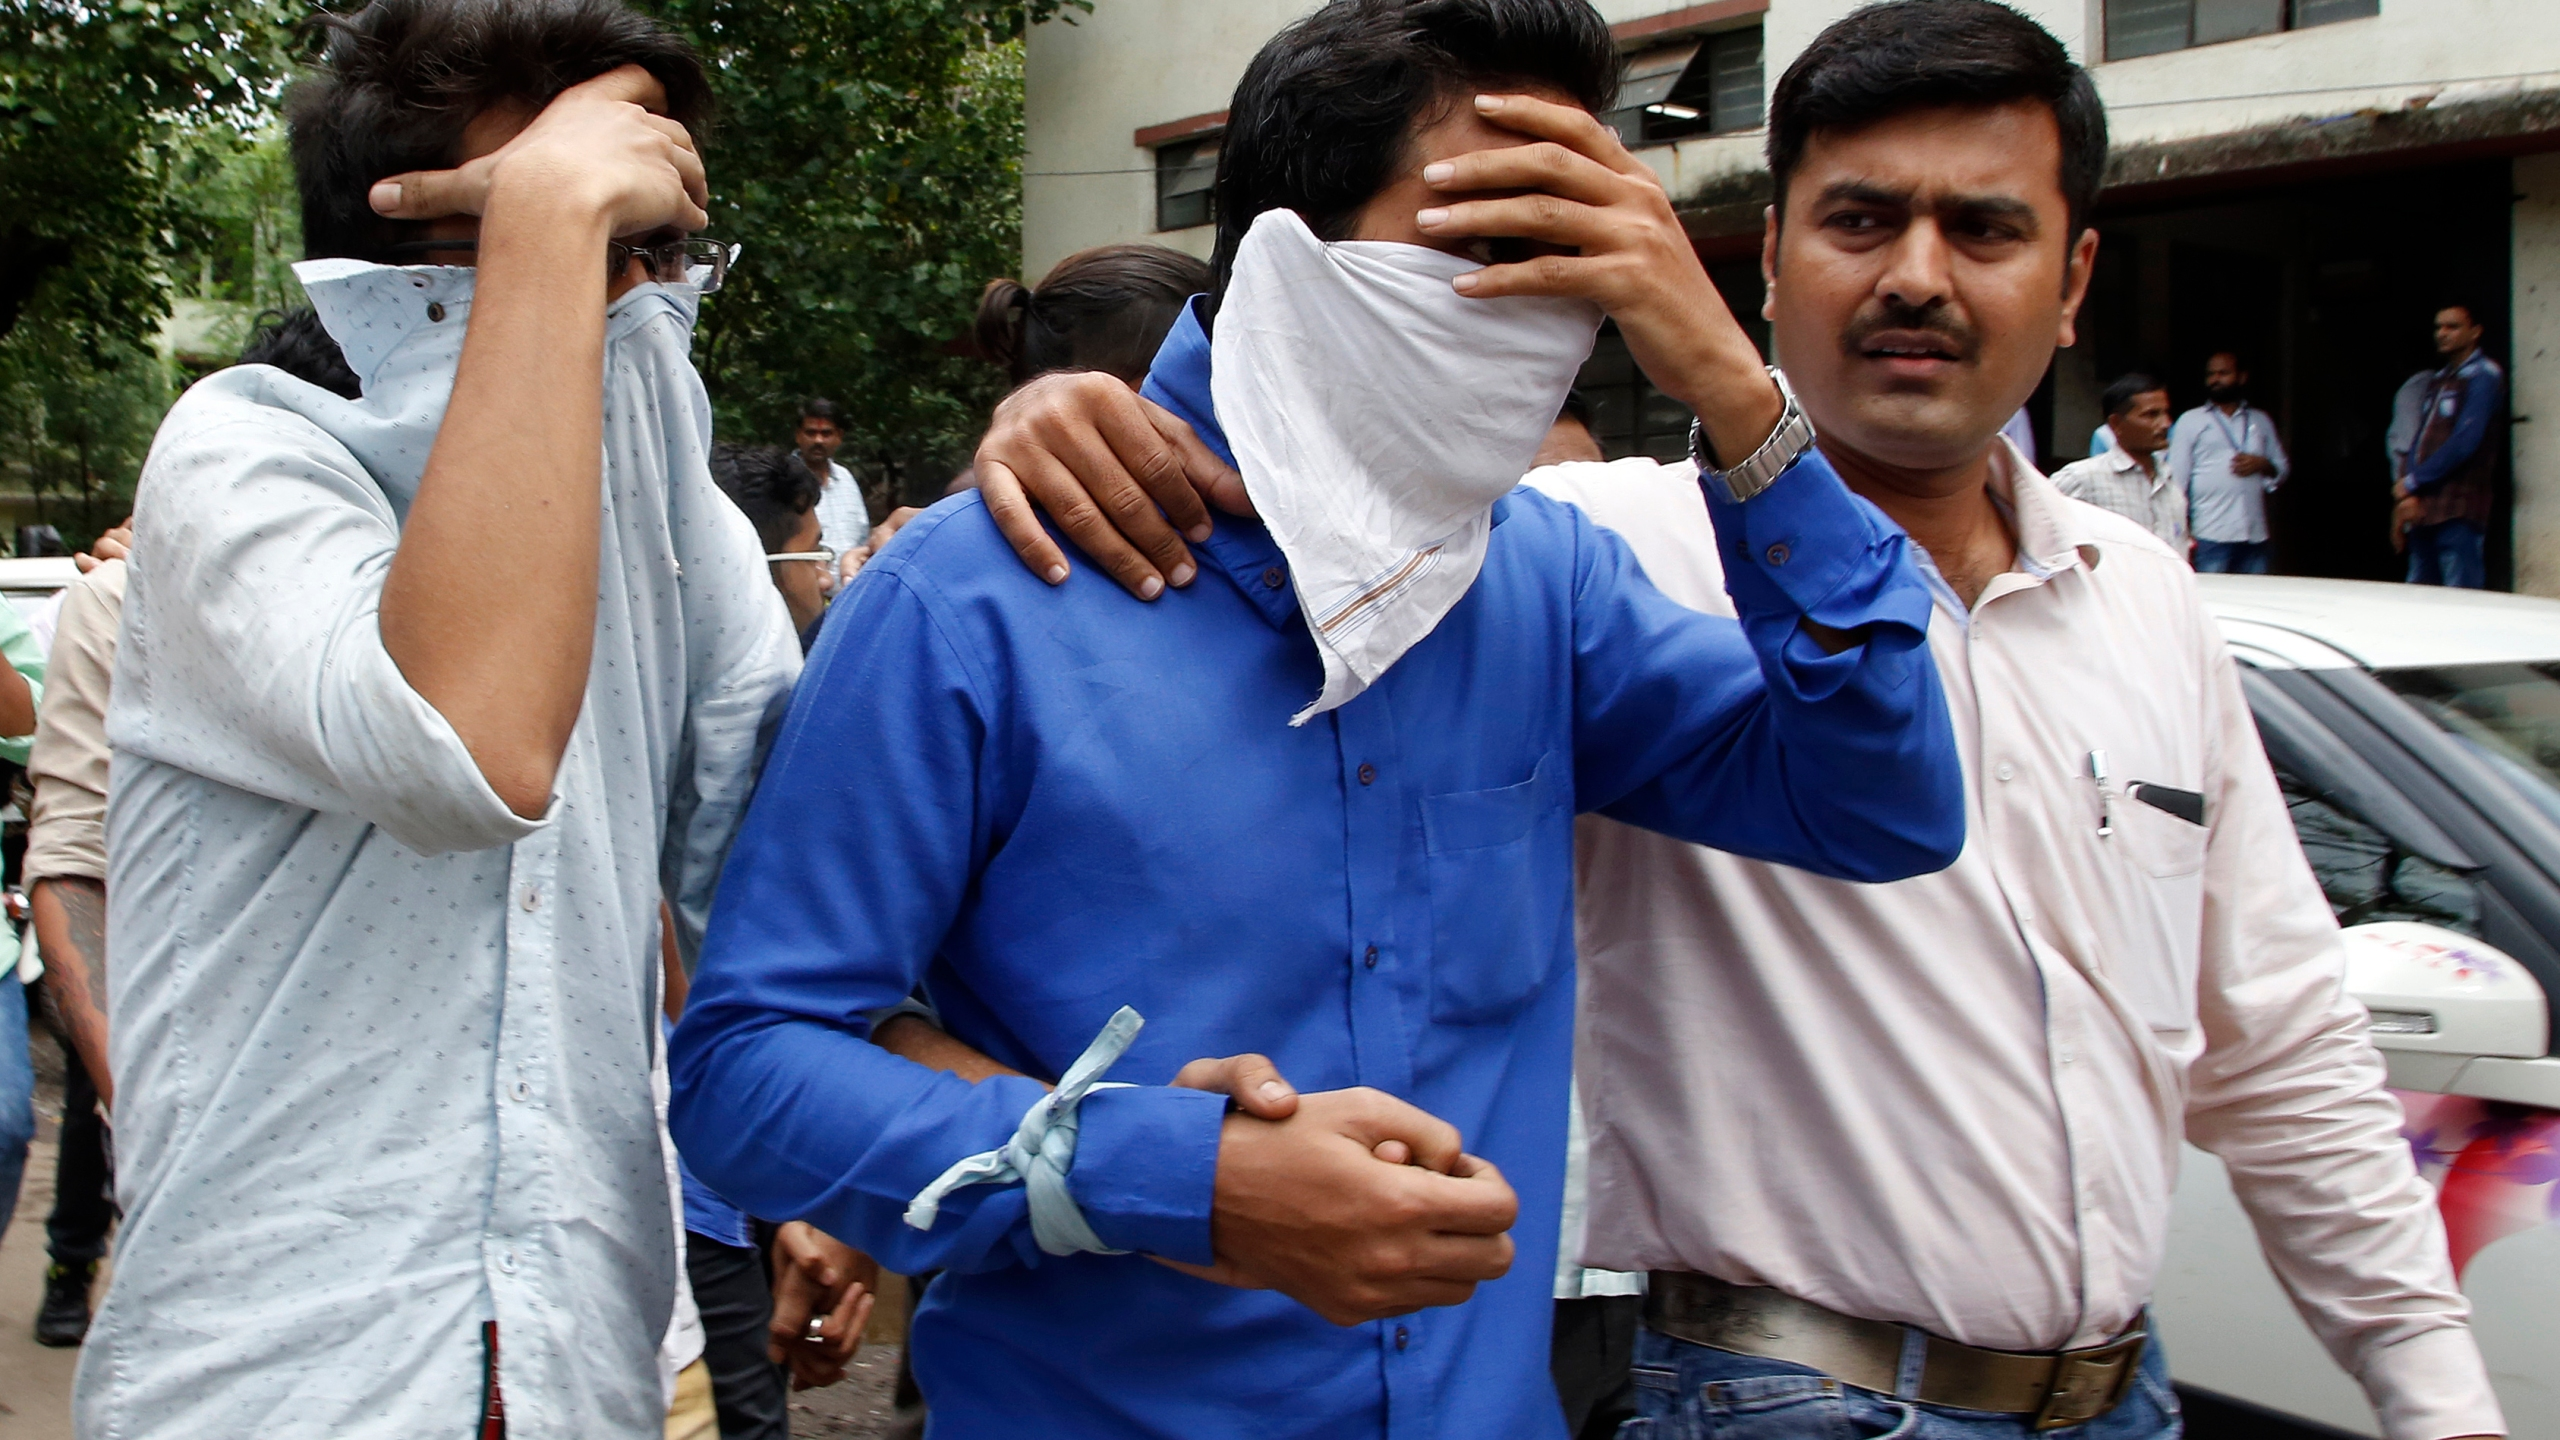 A police official, right, escorts two men outside the court in Thane, outskirts of Mumbai, India, Thursday, Oct. 6, 2016. Indian police have ar_191818